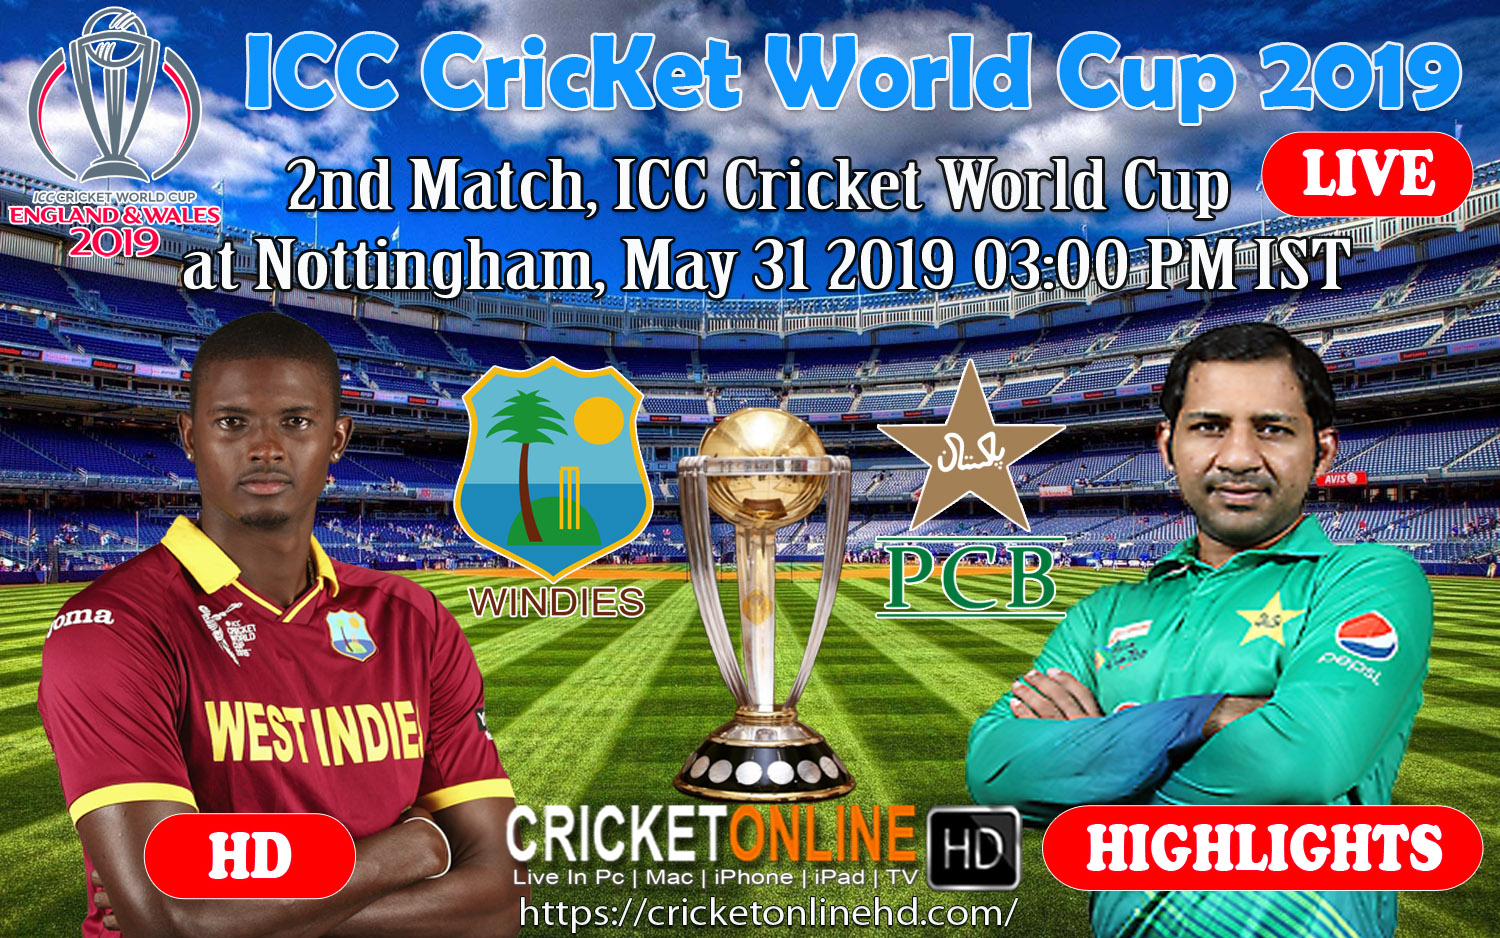 2nd match, ICC Cricket World Cup at Nottingham, May 31 2019